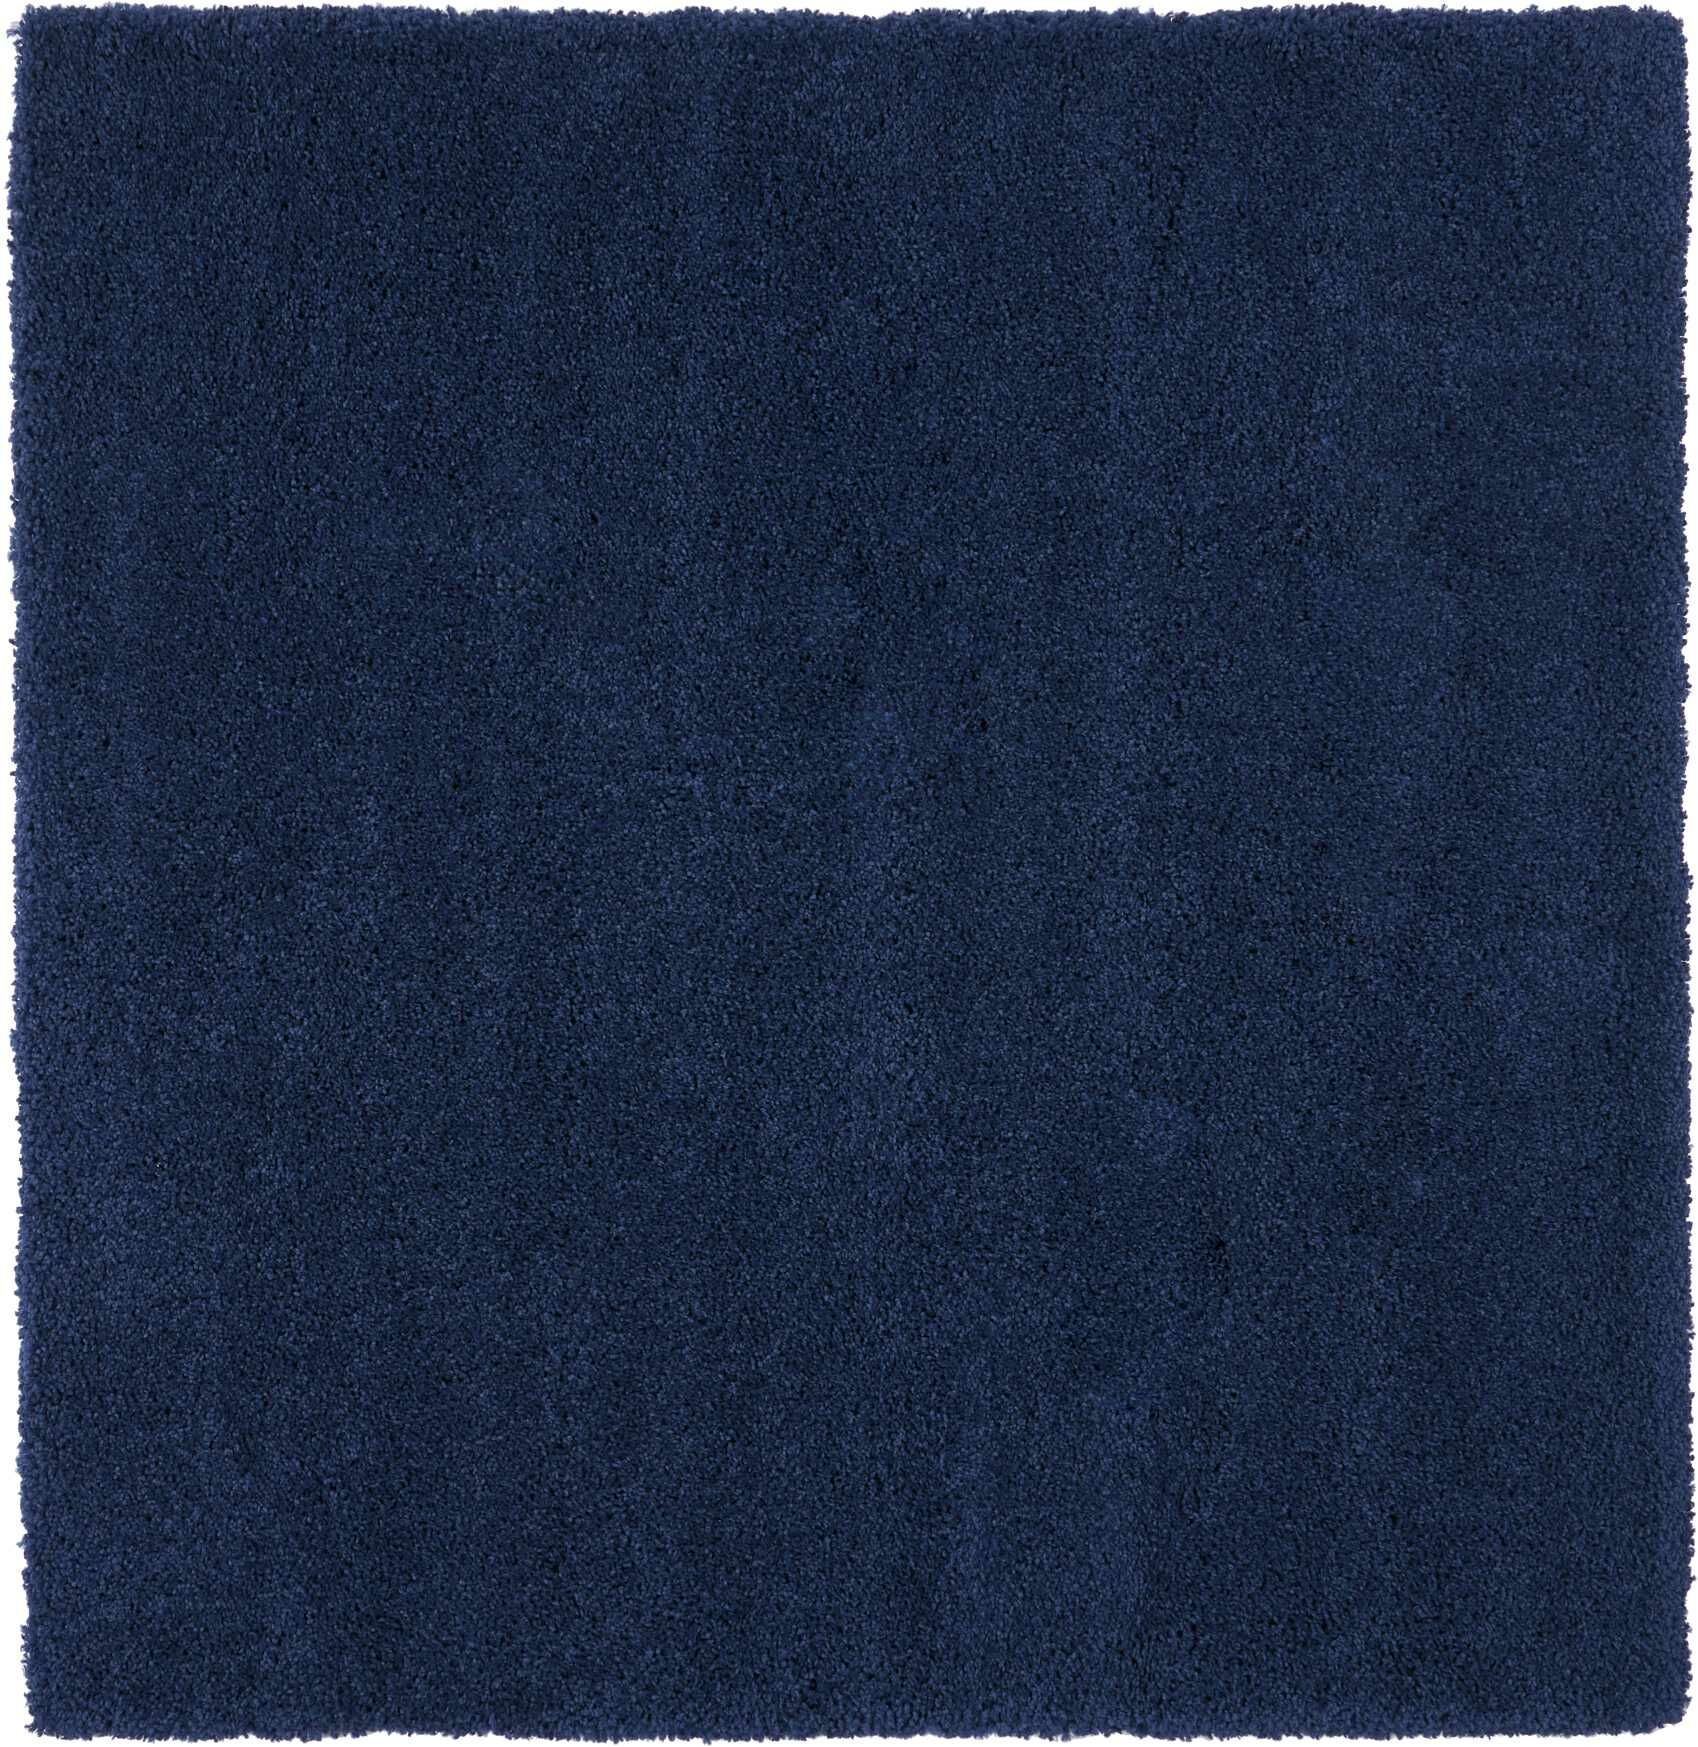 Parrish Navy Area Rug Rug Size: Square 6'7